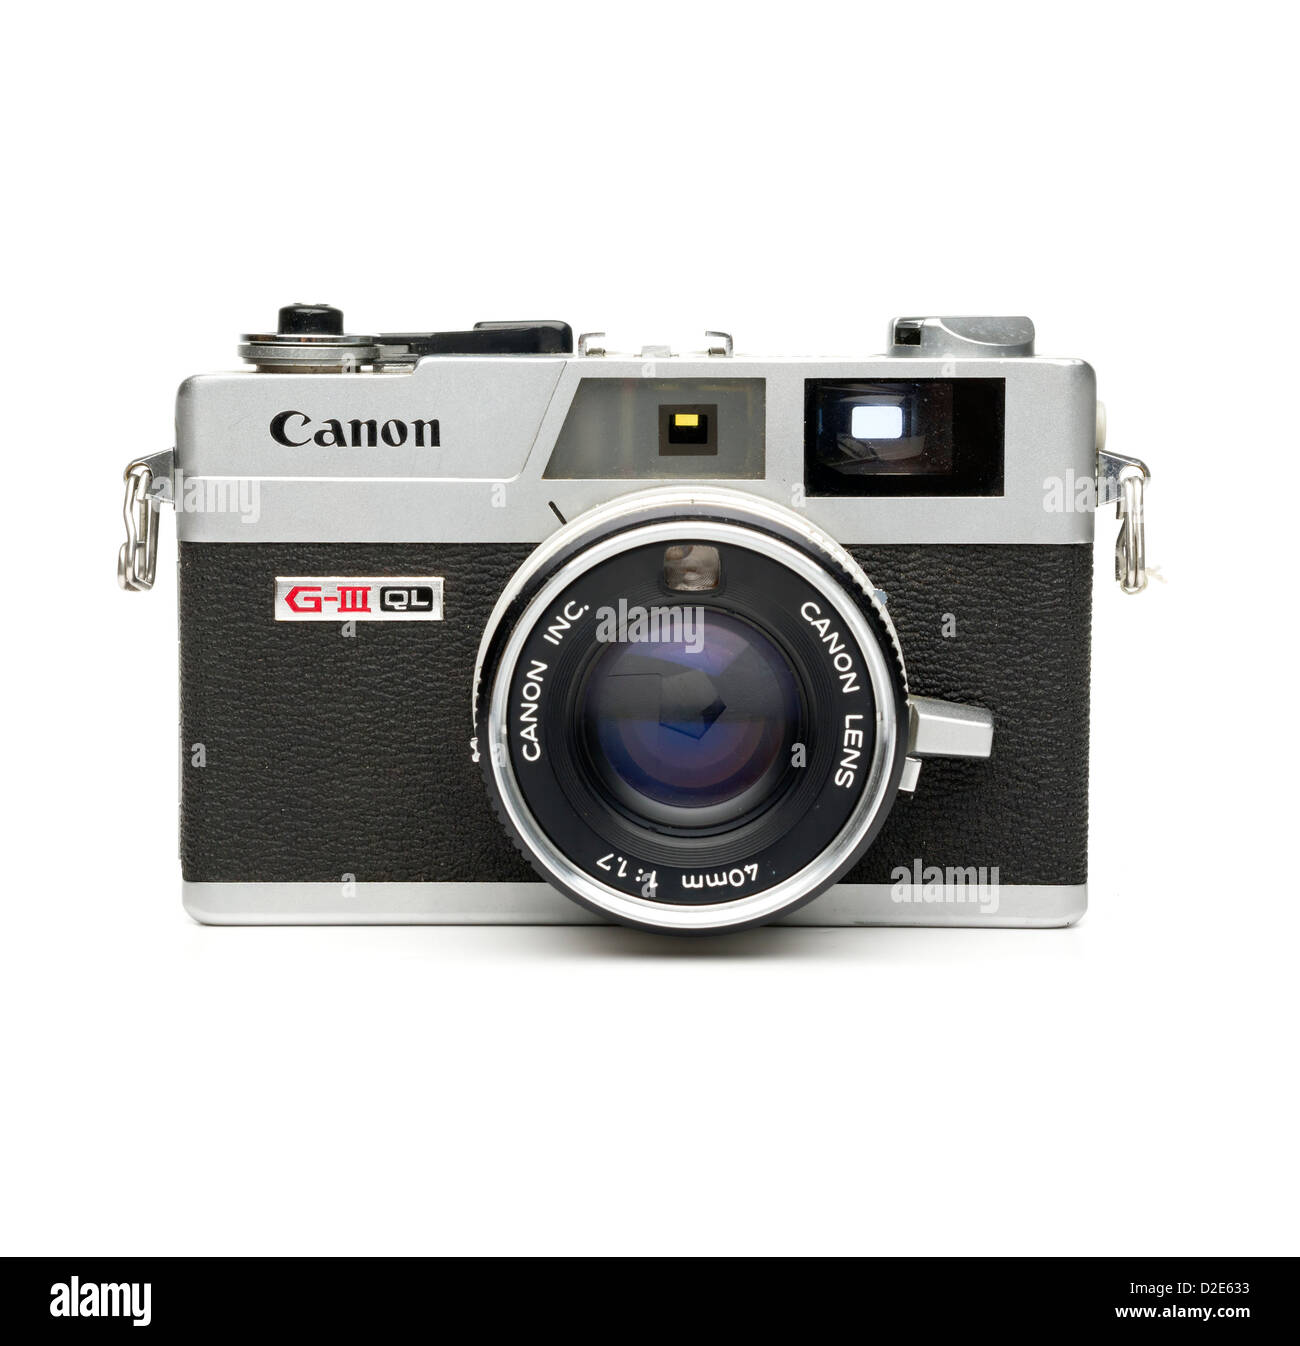 Canon Canonet G-III QL rangefinder film camera isolated on white background Stock Photo